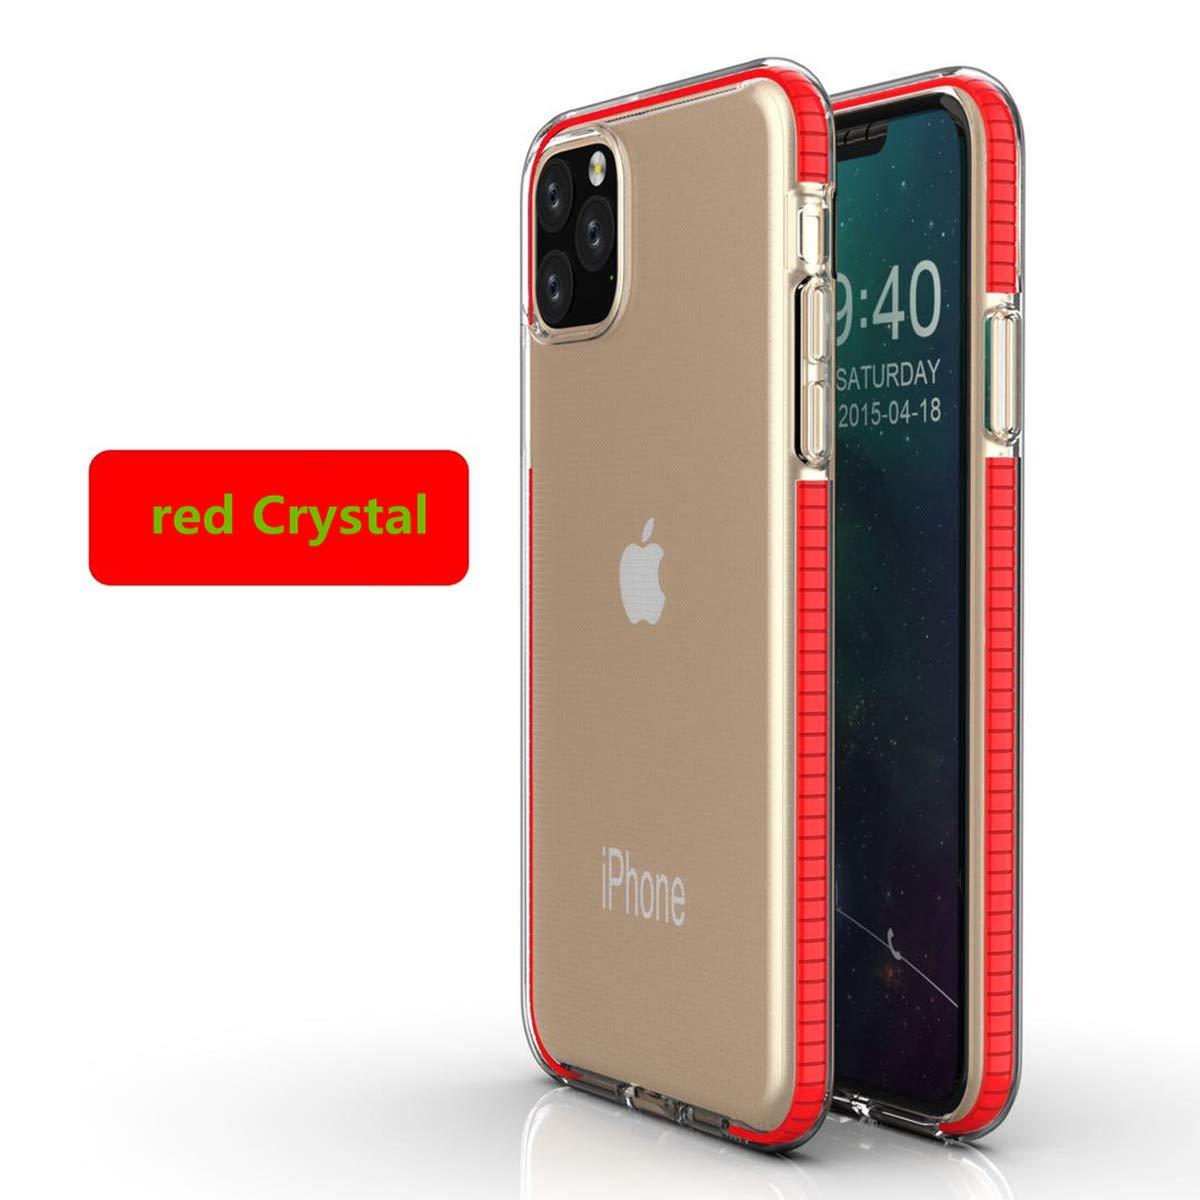 LucaSng Compatible with iPhone 11 Case, Clear iPhone 11 Cases Cover for iPhone 11 Pro 5.8 Inch Crystal Clear Case Shockproof Protection Soft Scratch-Resistant TPU Cover (red)